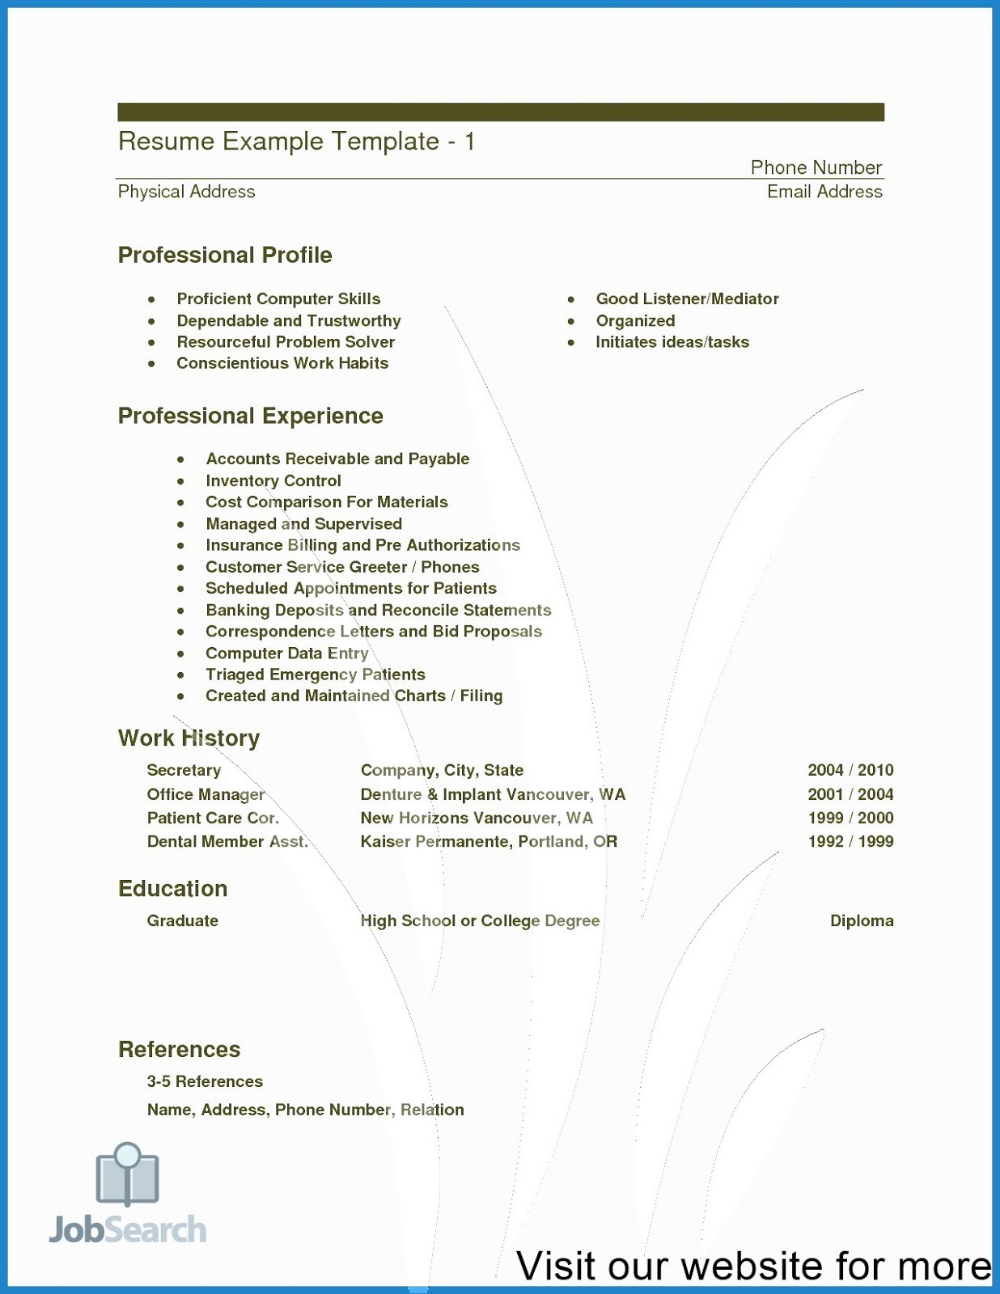 Healthcare Resume Templates 2020 Healthcare Administration Word In